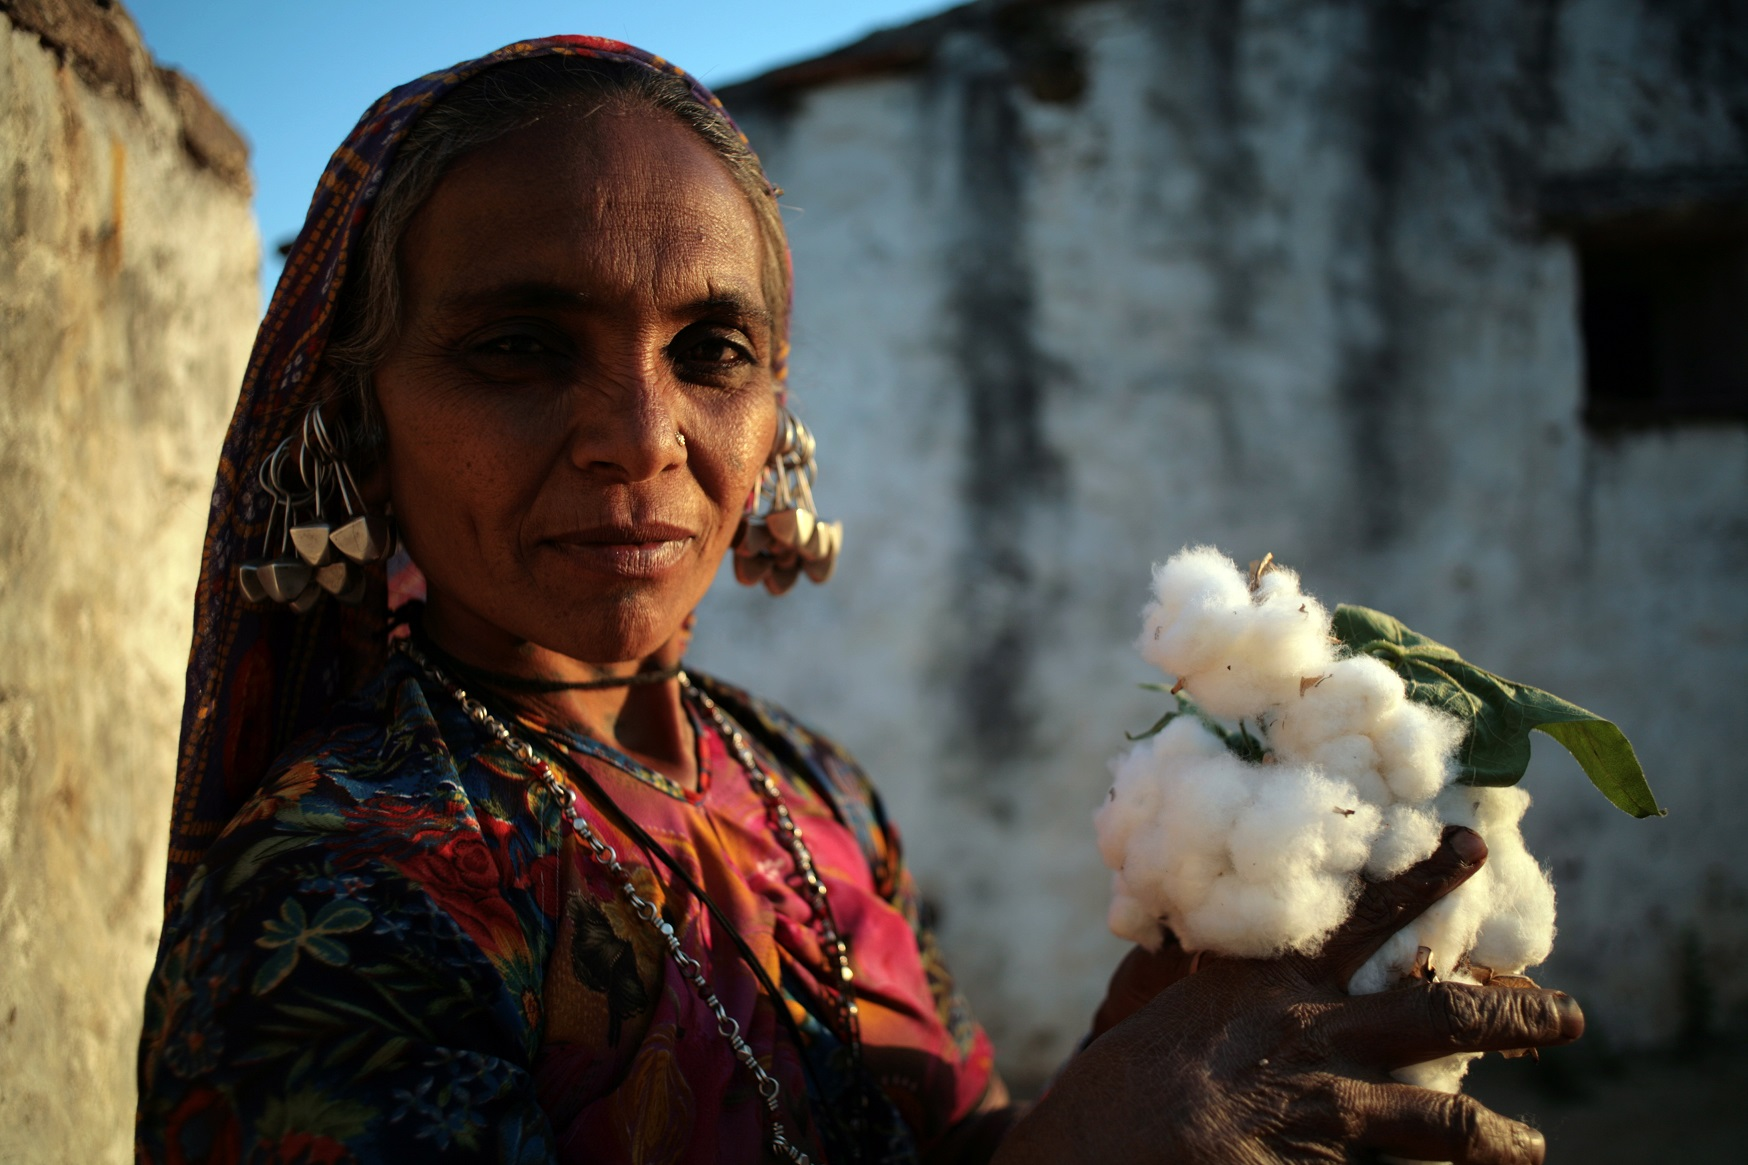 IMG_2164 - lady with cotton